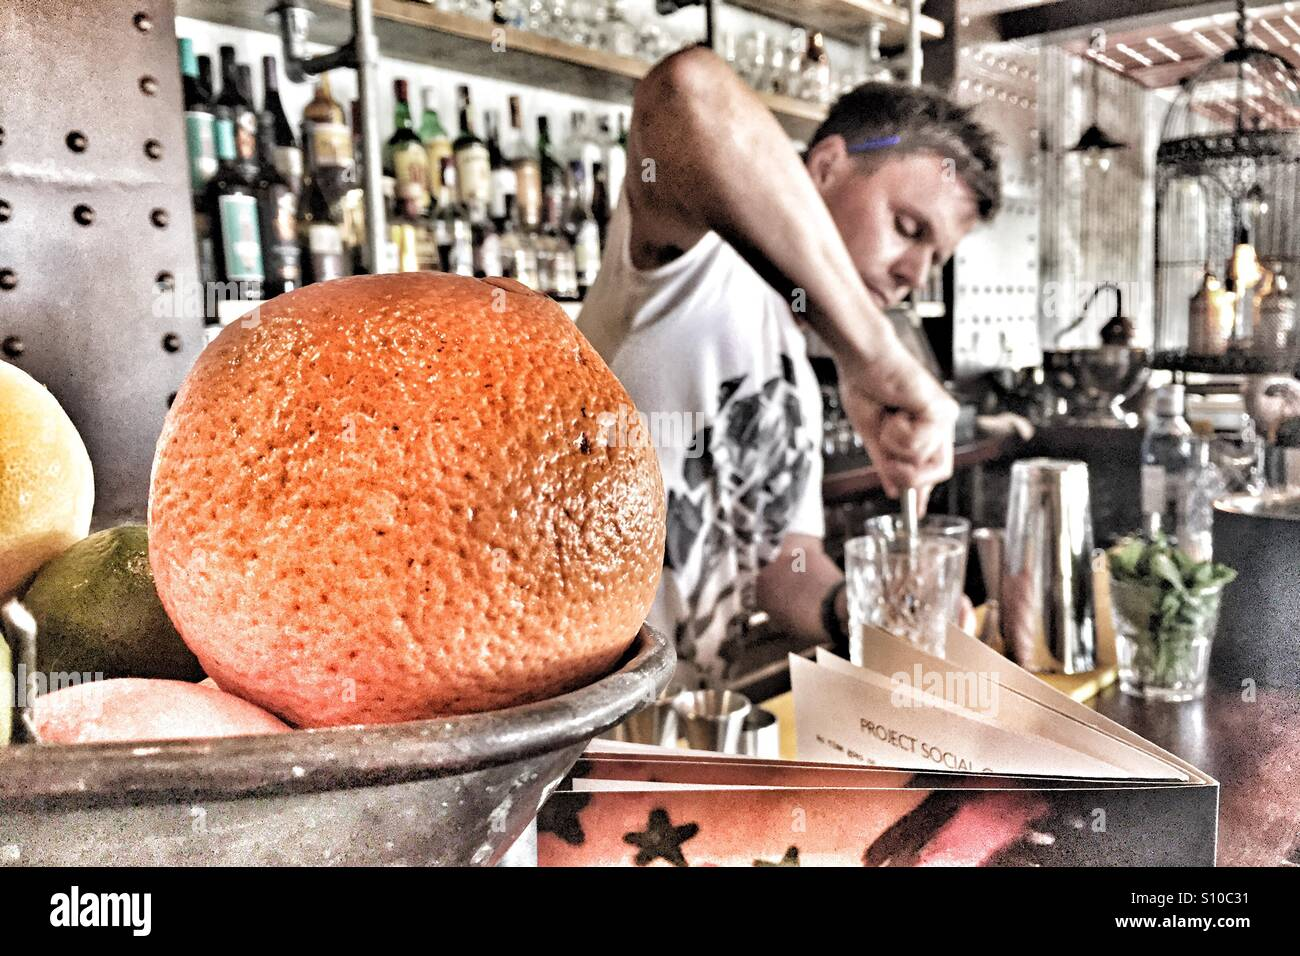 Making cocktails - Stock Image